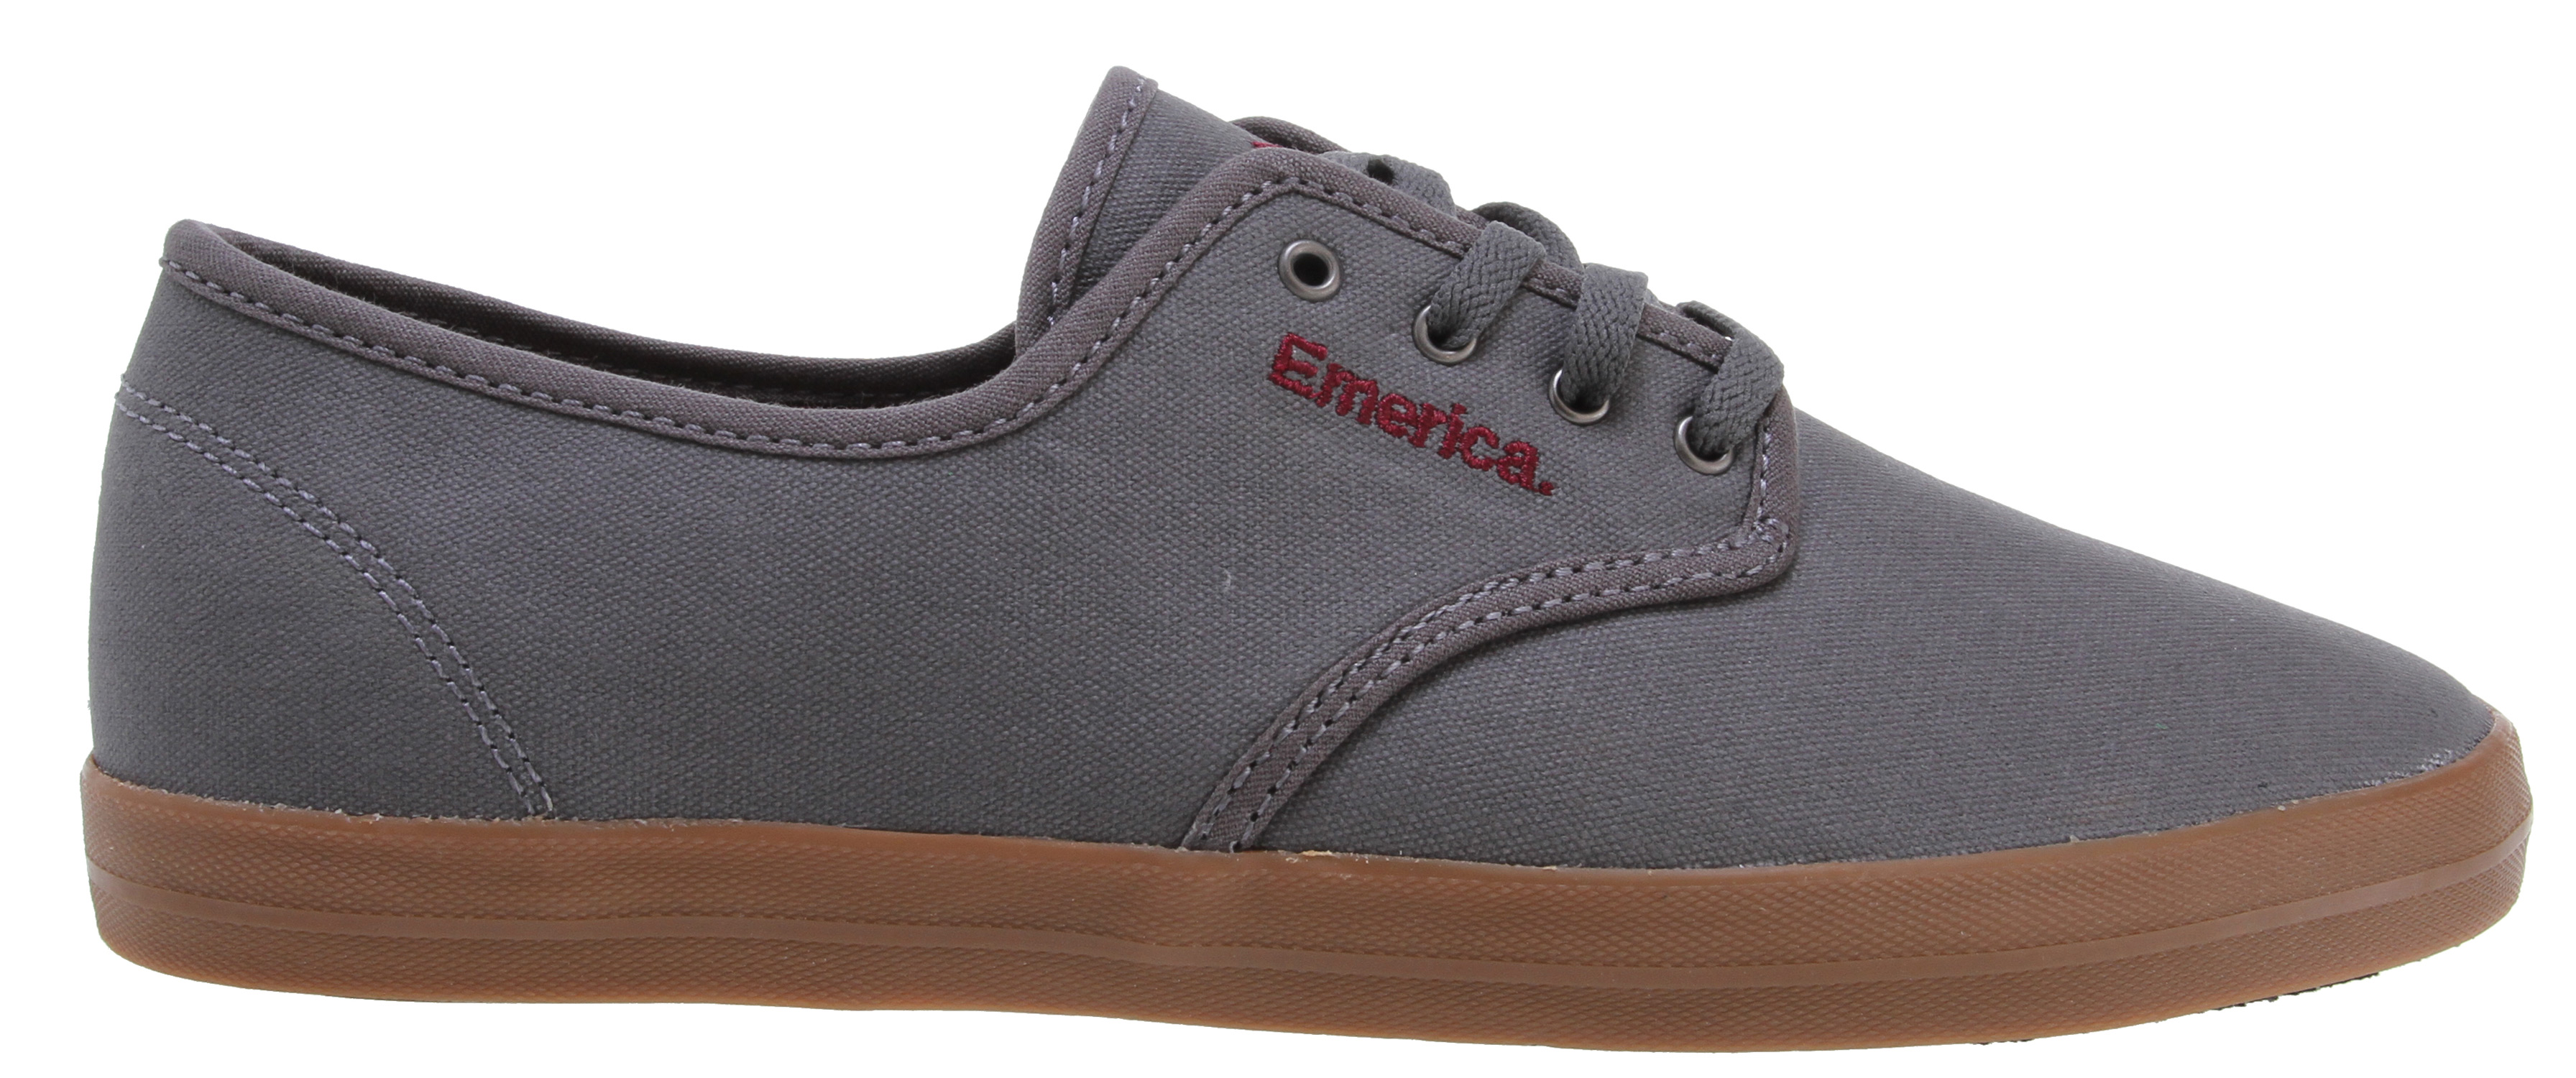 Skateboard Key Features of the Emerica The Wino Skate Shoes: Suede, textile or canvas upper materials EVA footbed - $39.95